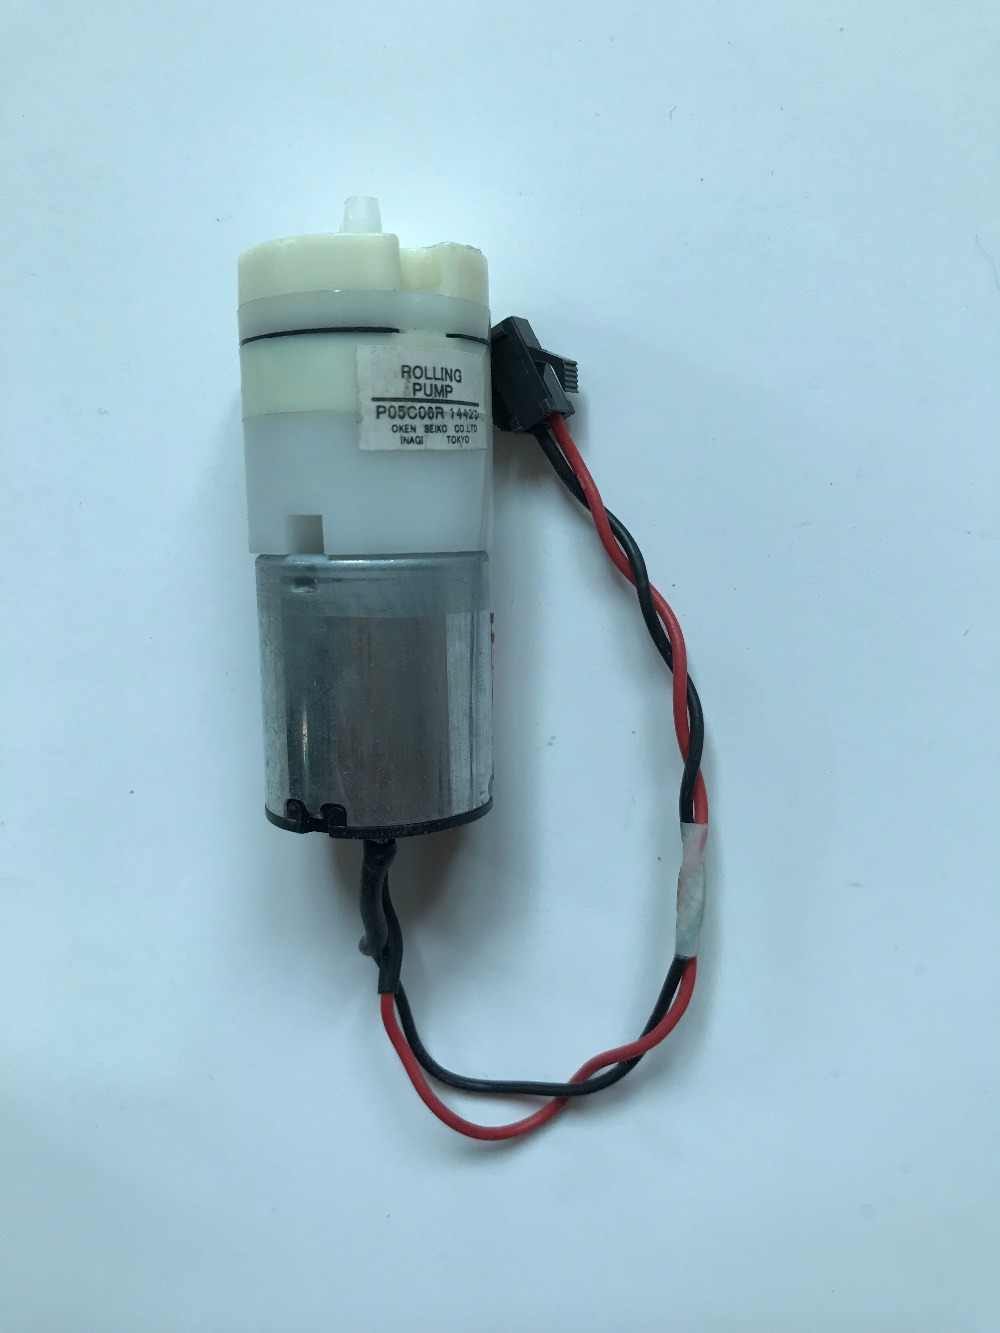 Fast Shipping Free Oken Seiko Miniature Air Pump Water Electrical Wiring Diaphragm P05c06r M26b12340r Dc12v In Replacement Parts From Home Improvement